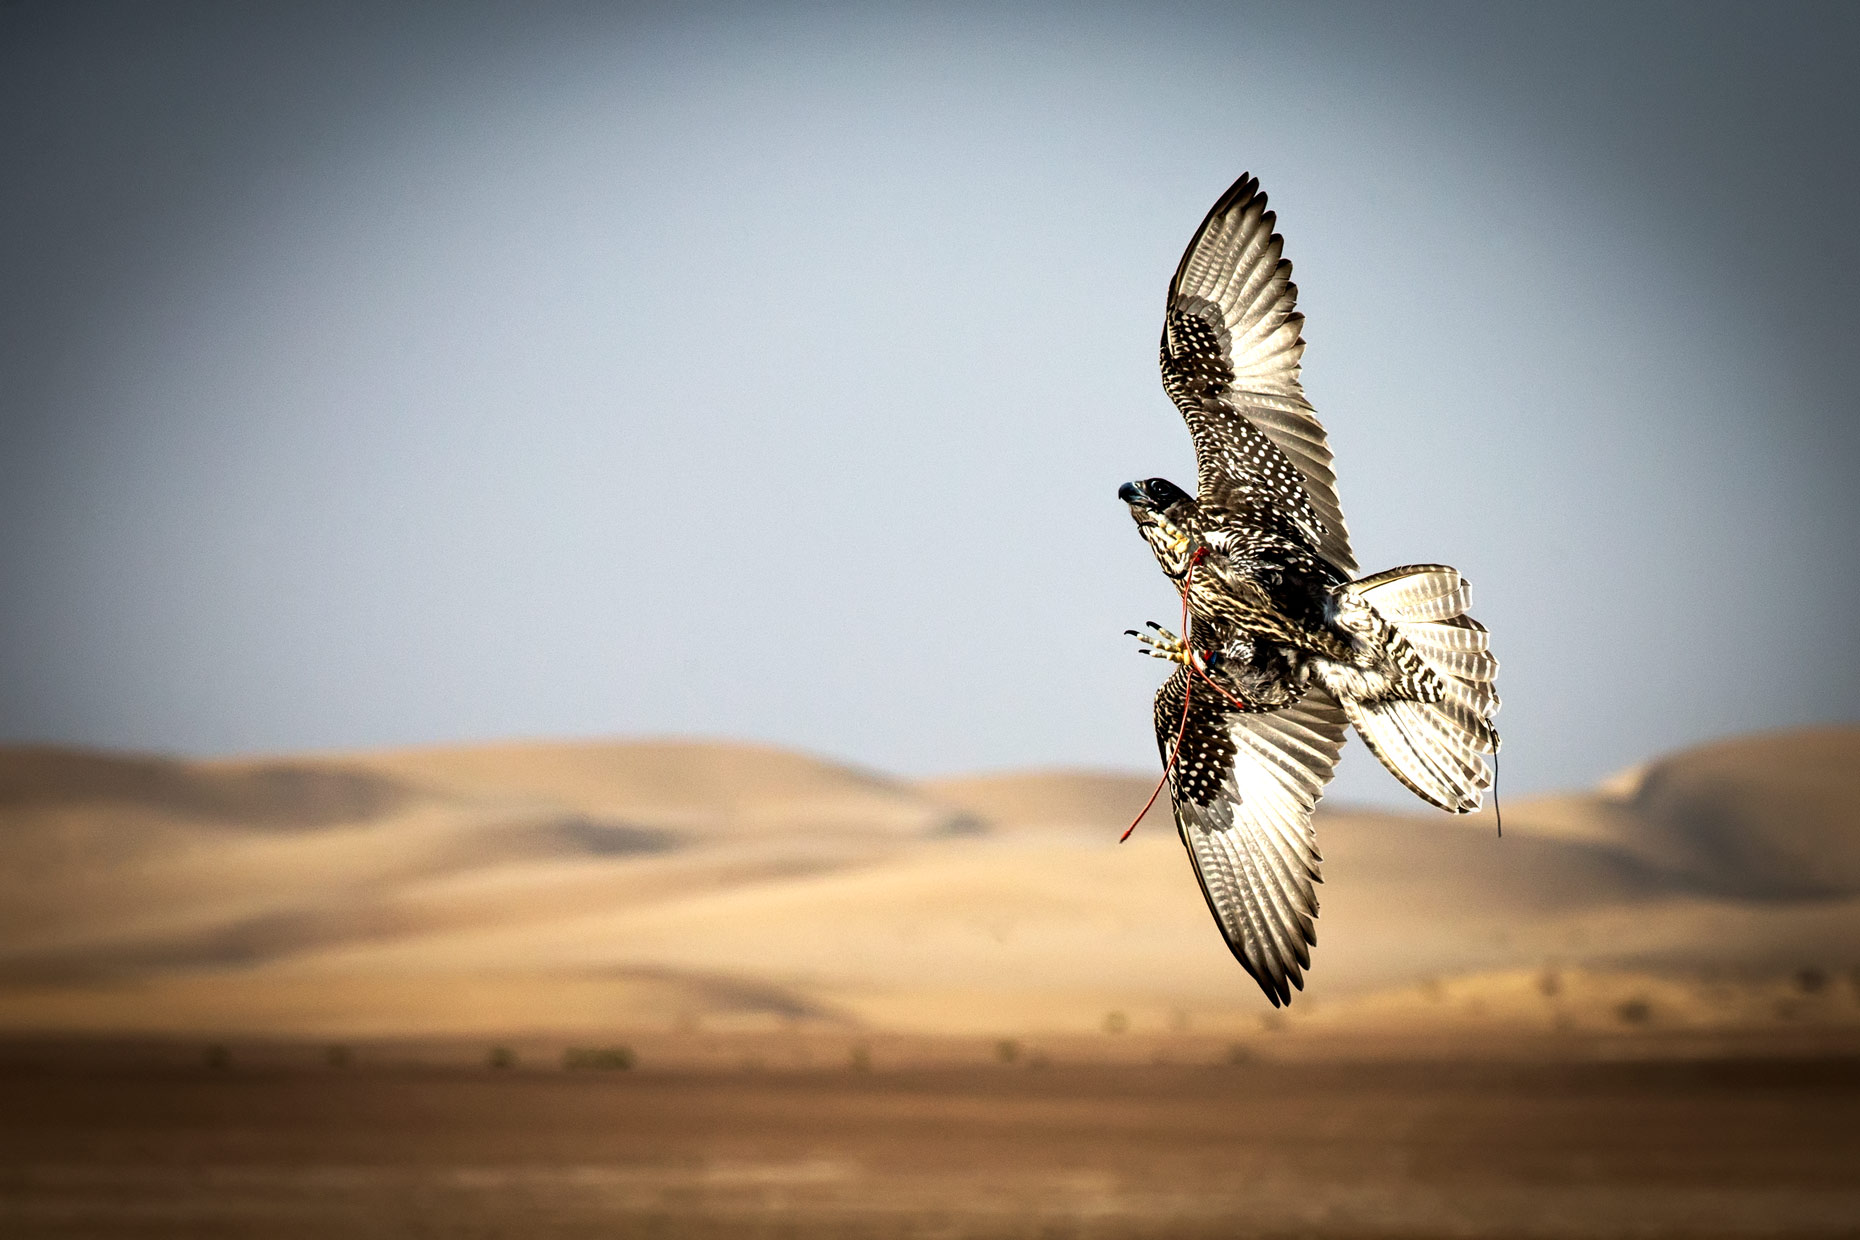 Wouter Kingma Falcons of Arabia 04